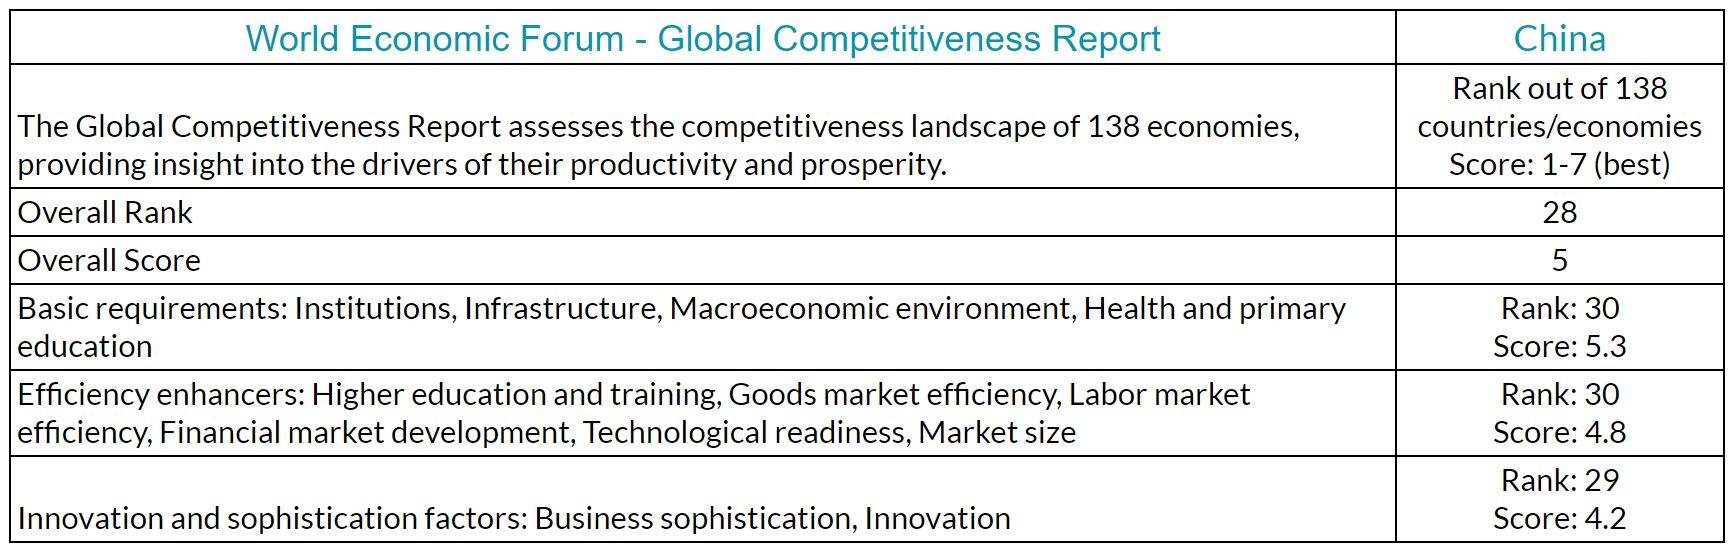 China World Economic Forum Global Competitiveness Report